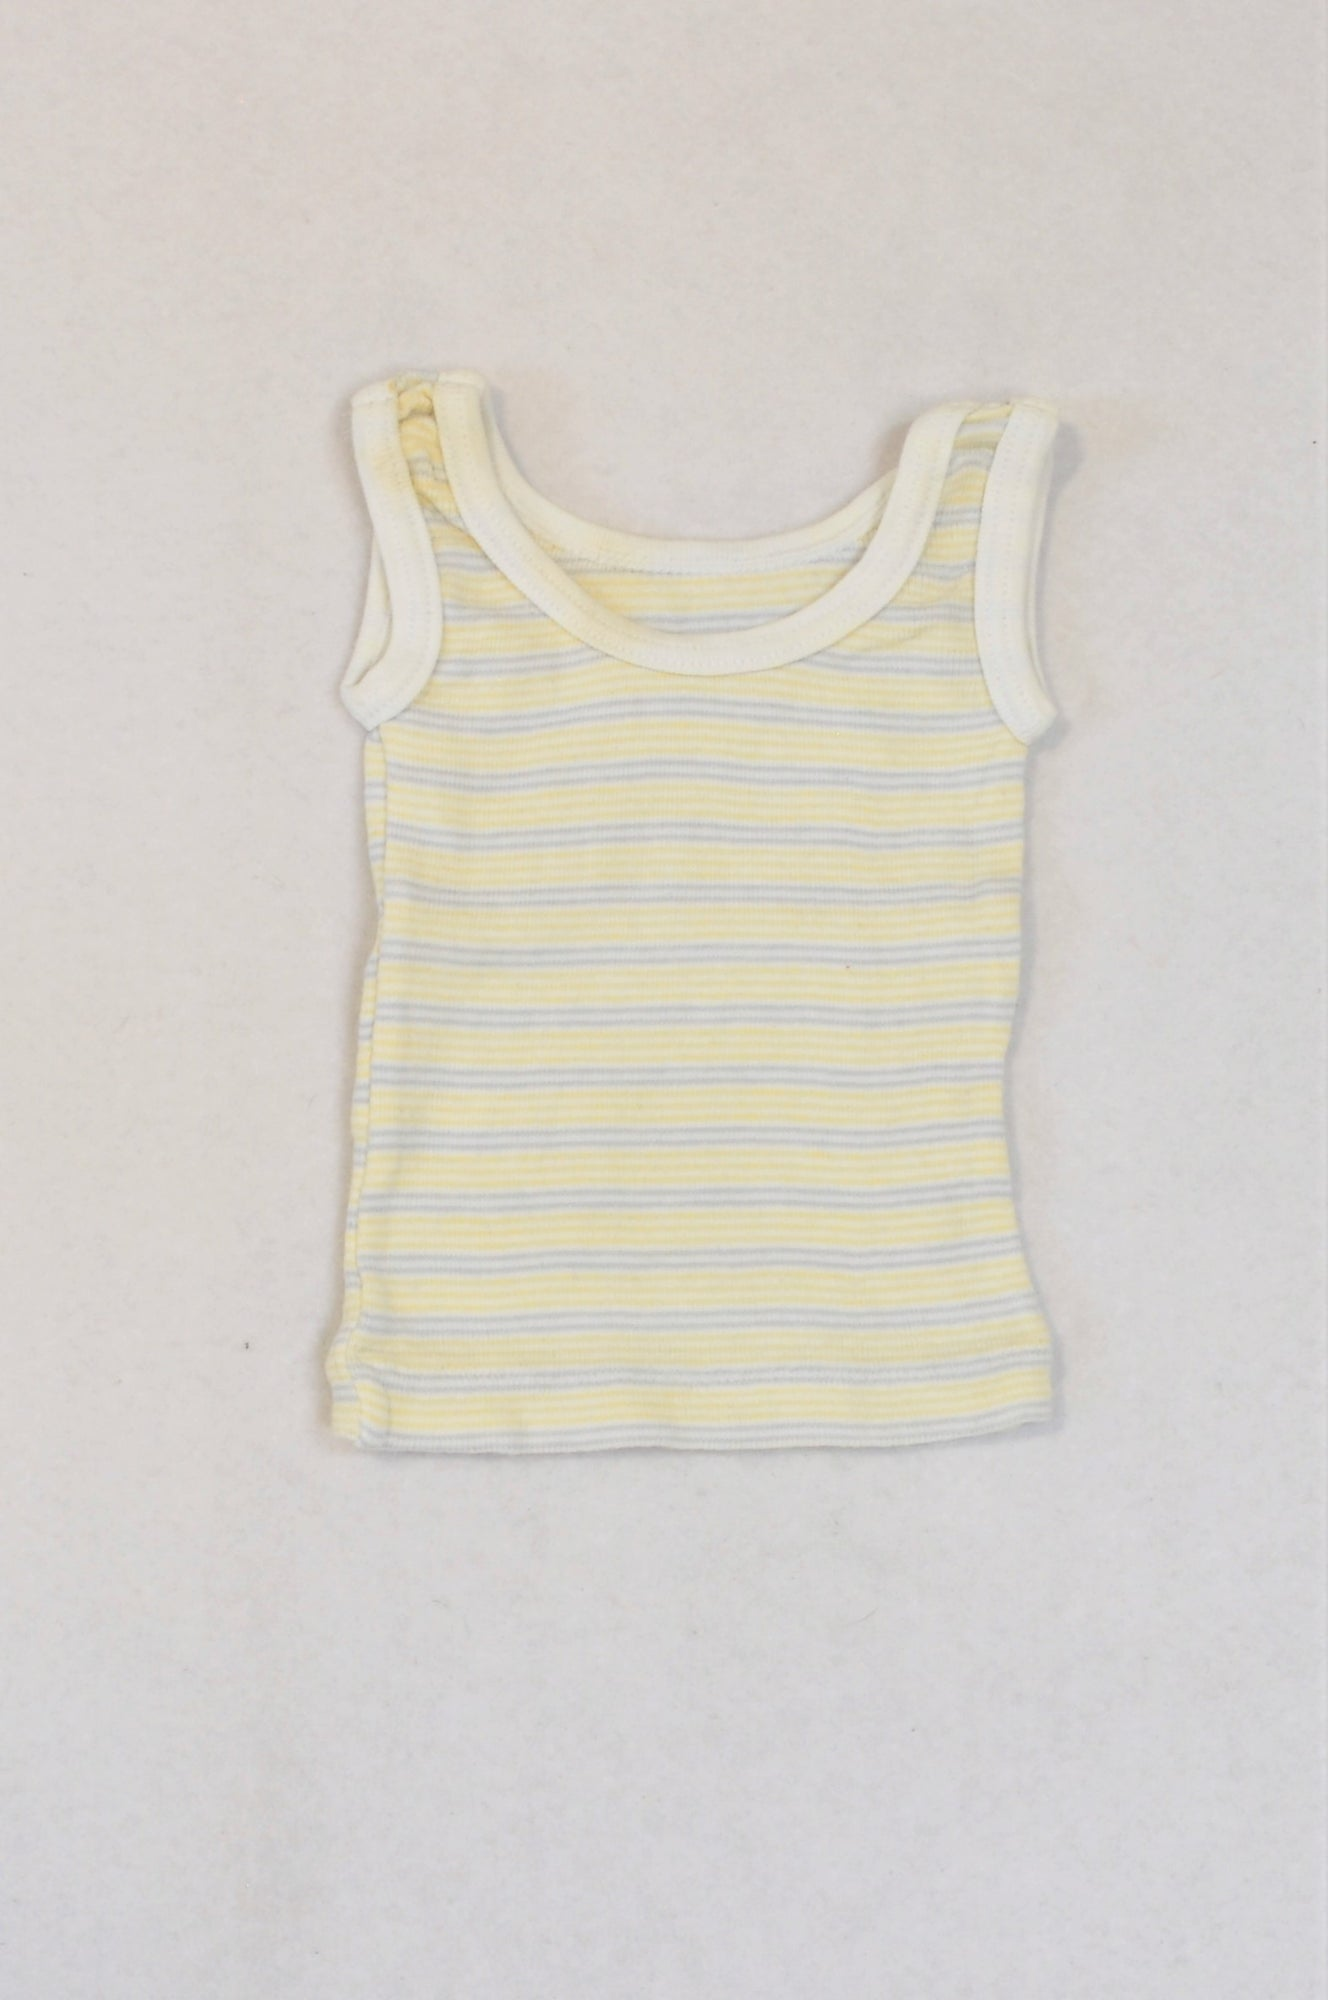 Woolworths Soft Yellow & Blue Tank Top Unisex 0-3 months